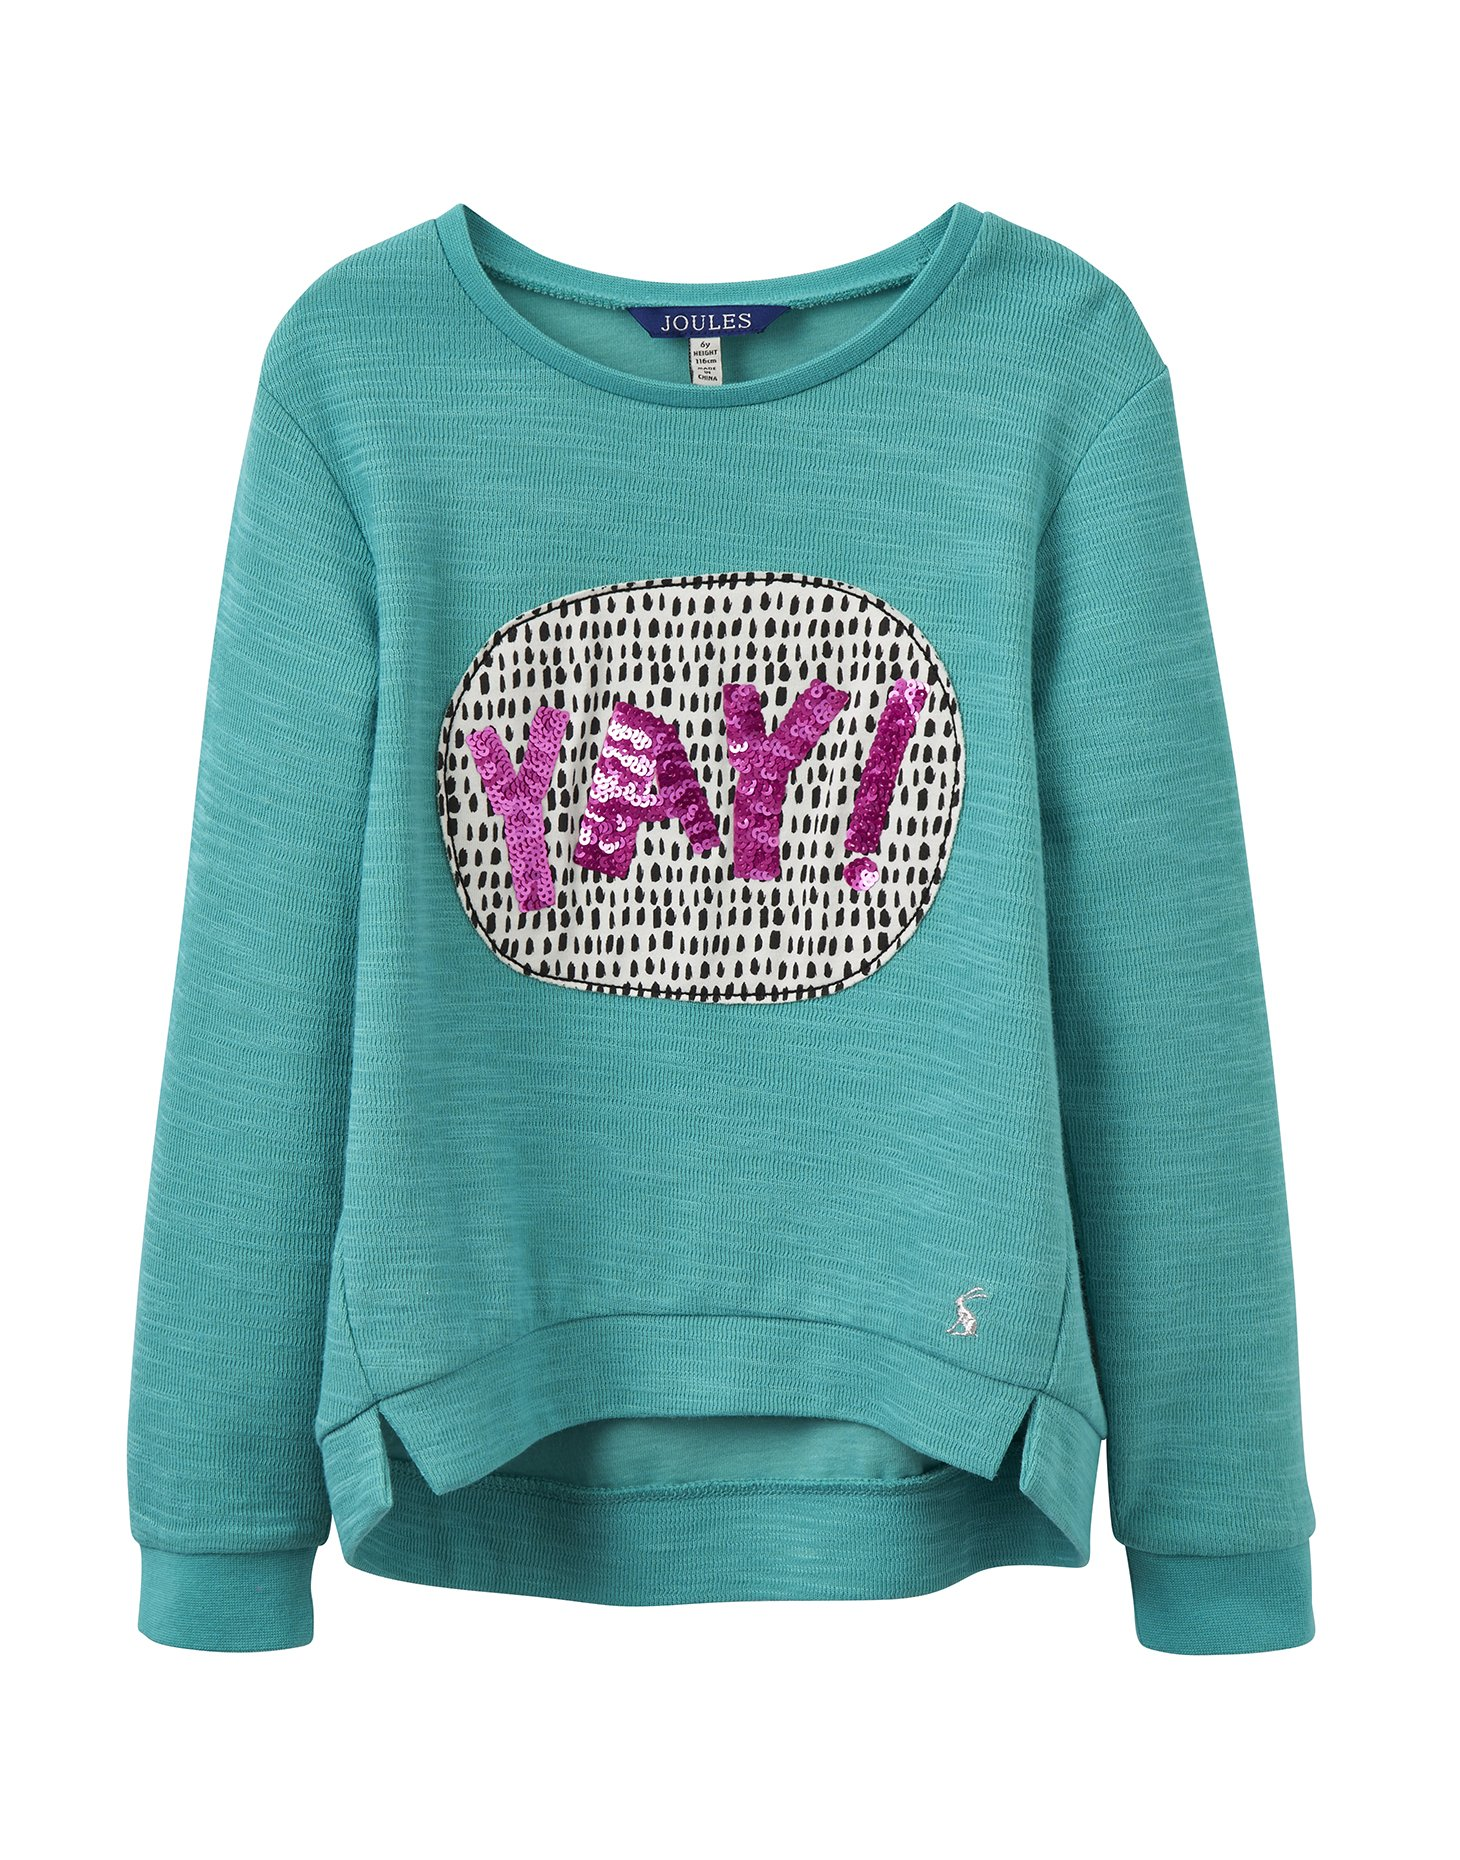 Joules Screen Print Sweatshirt - Cool Green Yay - 3 Years - 98 cm by Joules